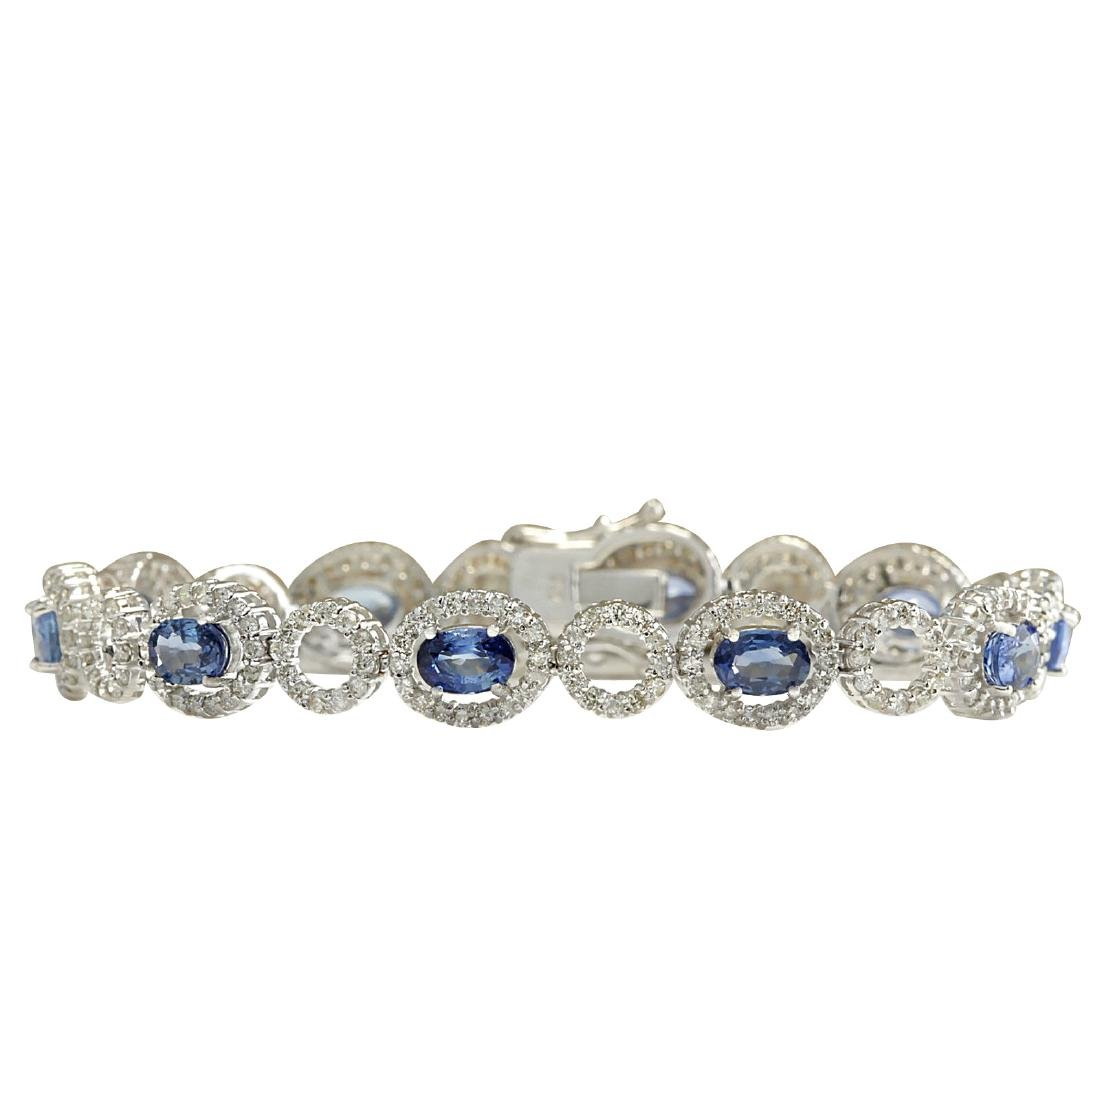 10.58CTW Natural Sapphire And Diamond Bracelet In 18K